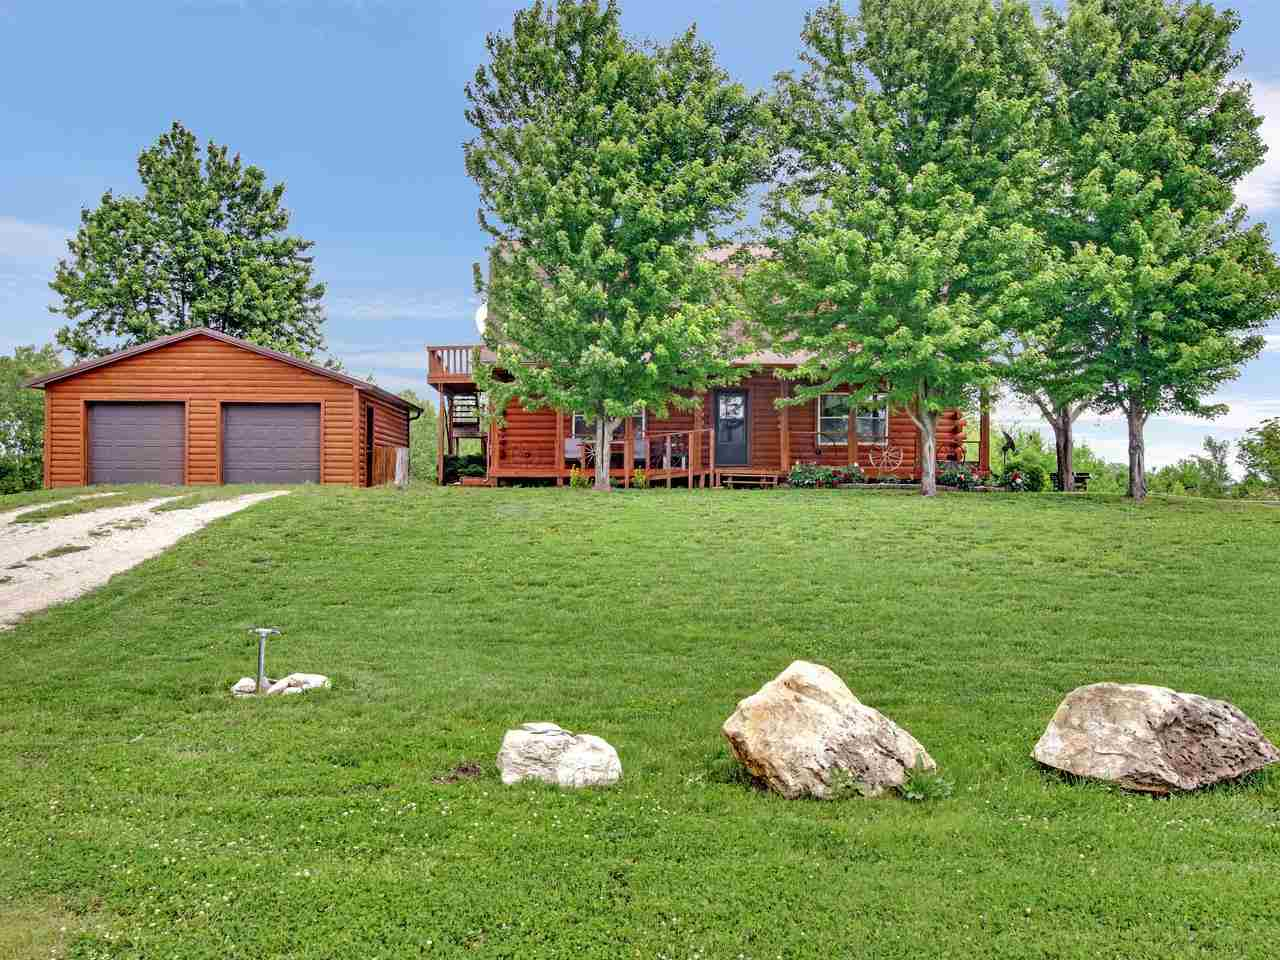 You found it! This highly sought after country living property boasts a Log Home with plenty of acer